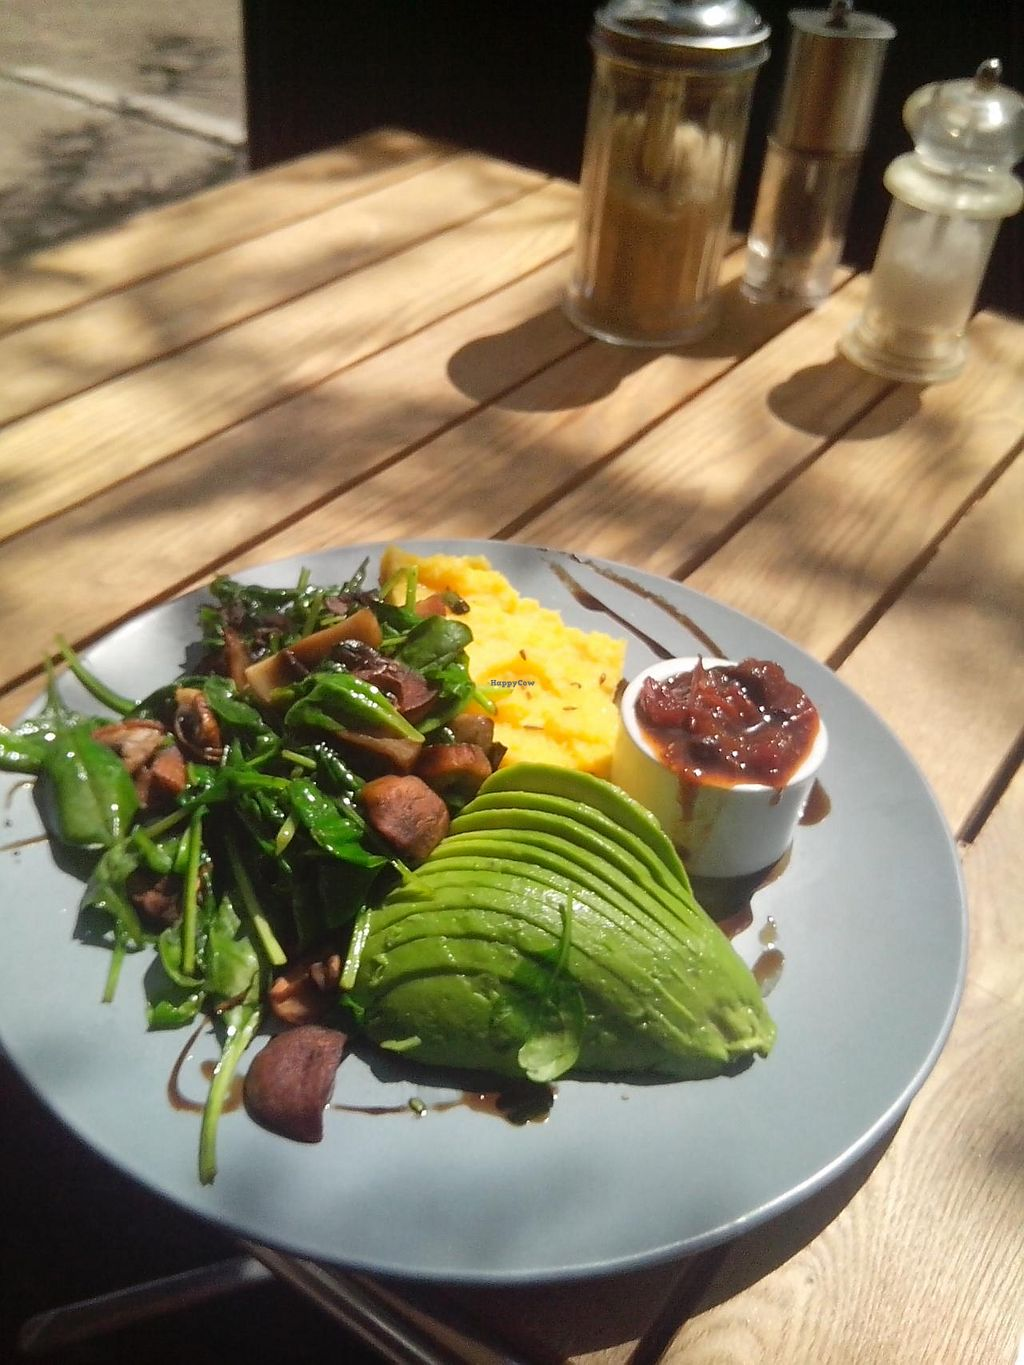 """Photo of CLOSED: Jazz Apple Kitchen  by <a href=""""/members/profile/nerida"""">nerida</a> <br/>Vegan breakfast <br/> March 9, 2014  - <a href='/contact/abuse/image/43232/65603'>Report</a>"""